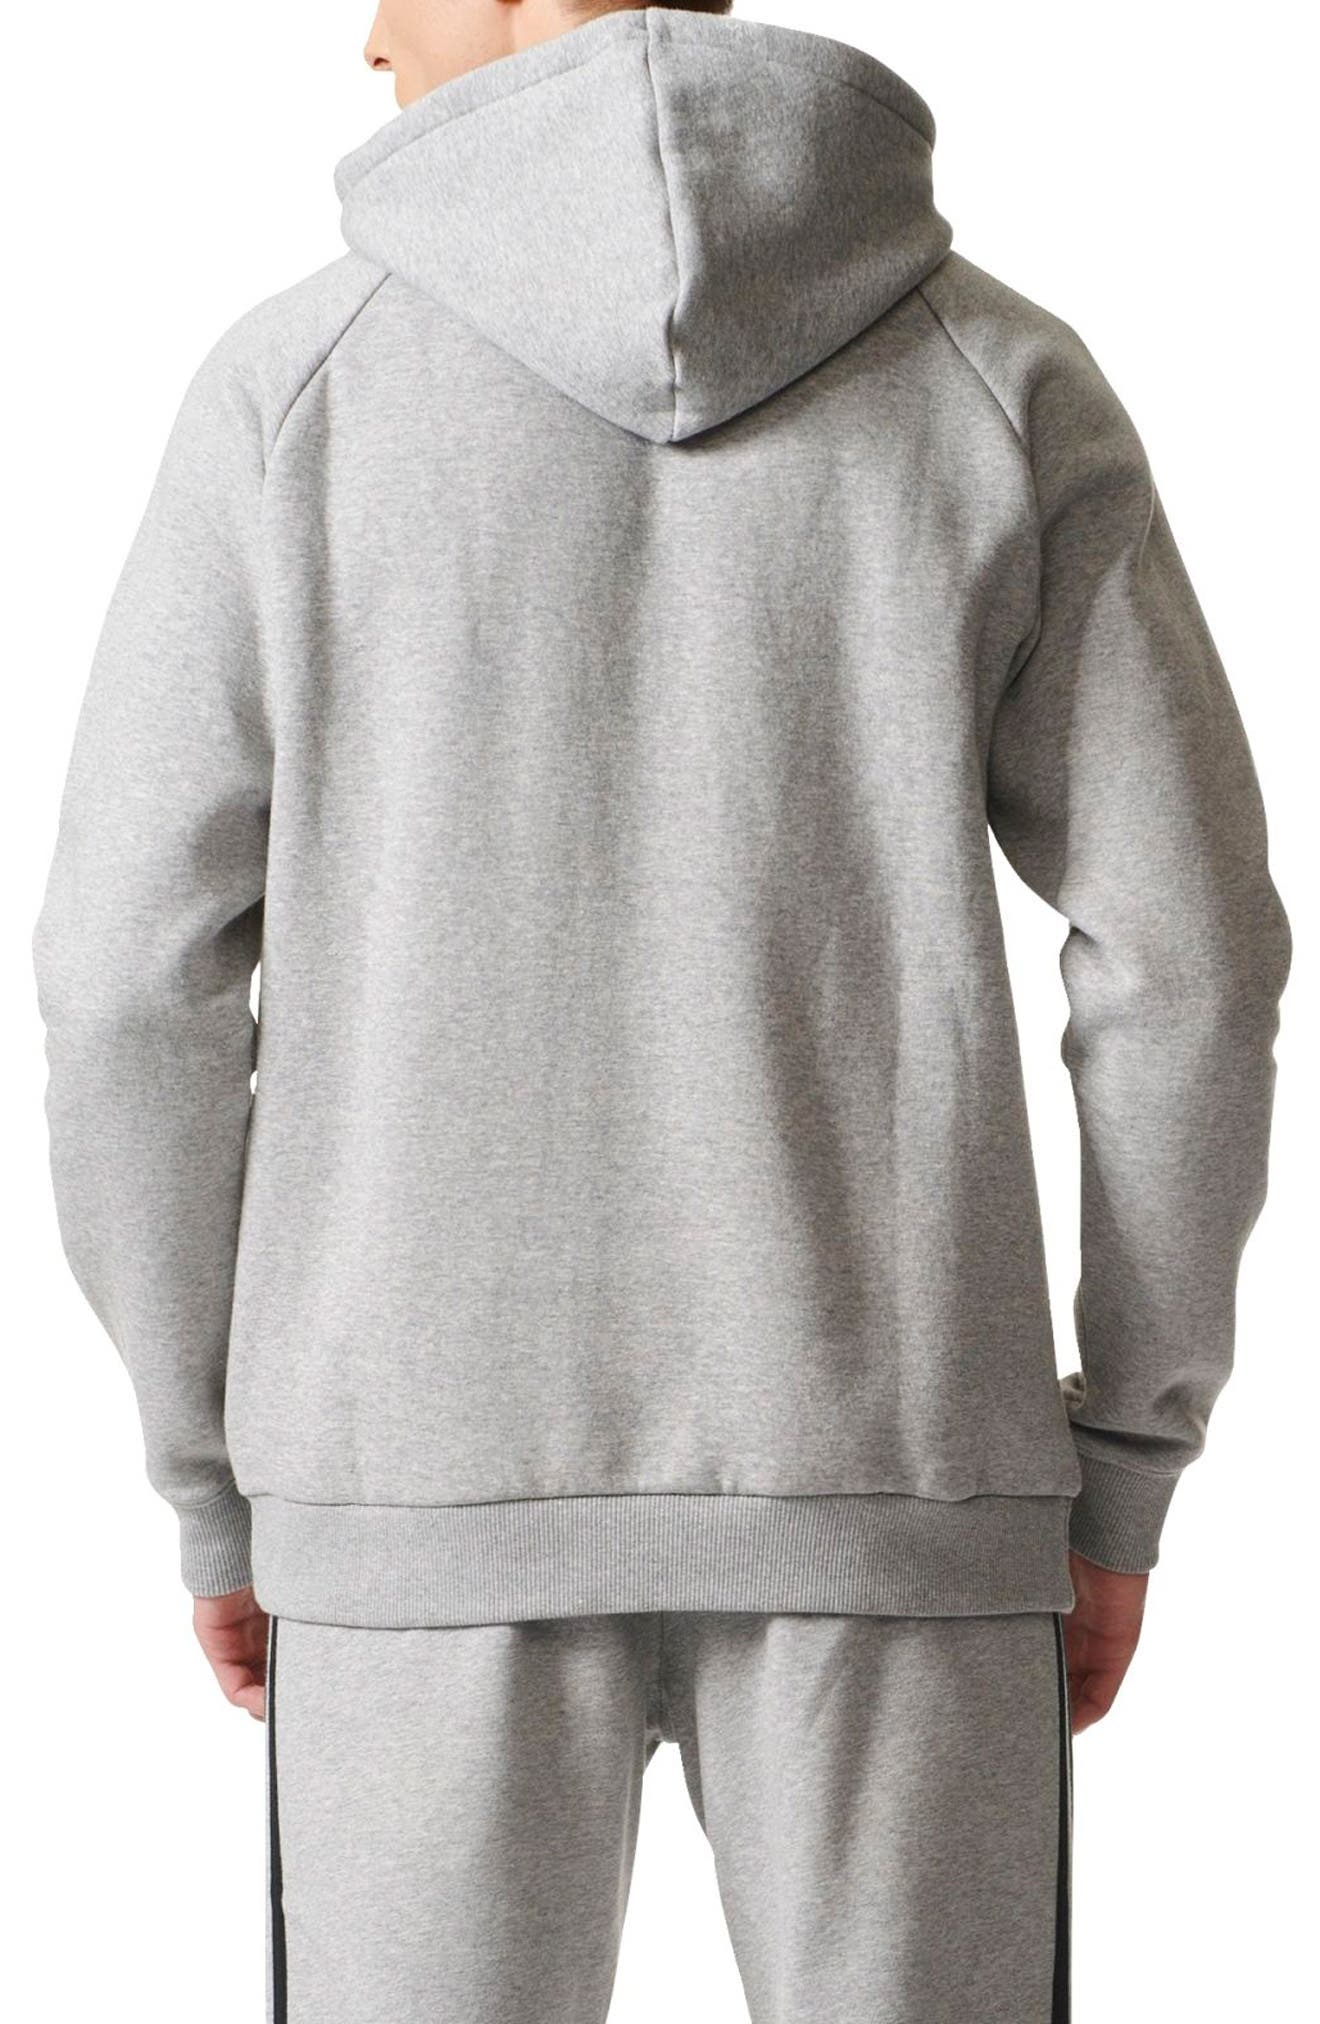 Trefoil Graphic Hoodie,                             Alternate thumbnail 4, color,                             Medium Grey Heather